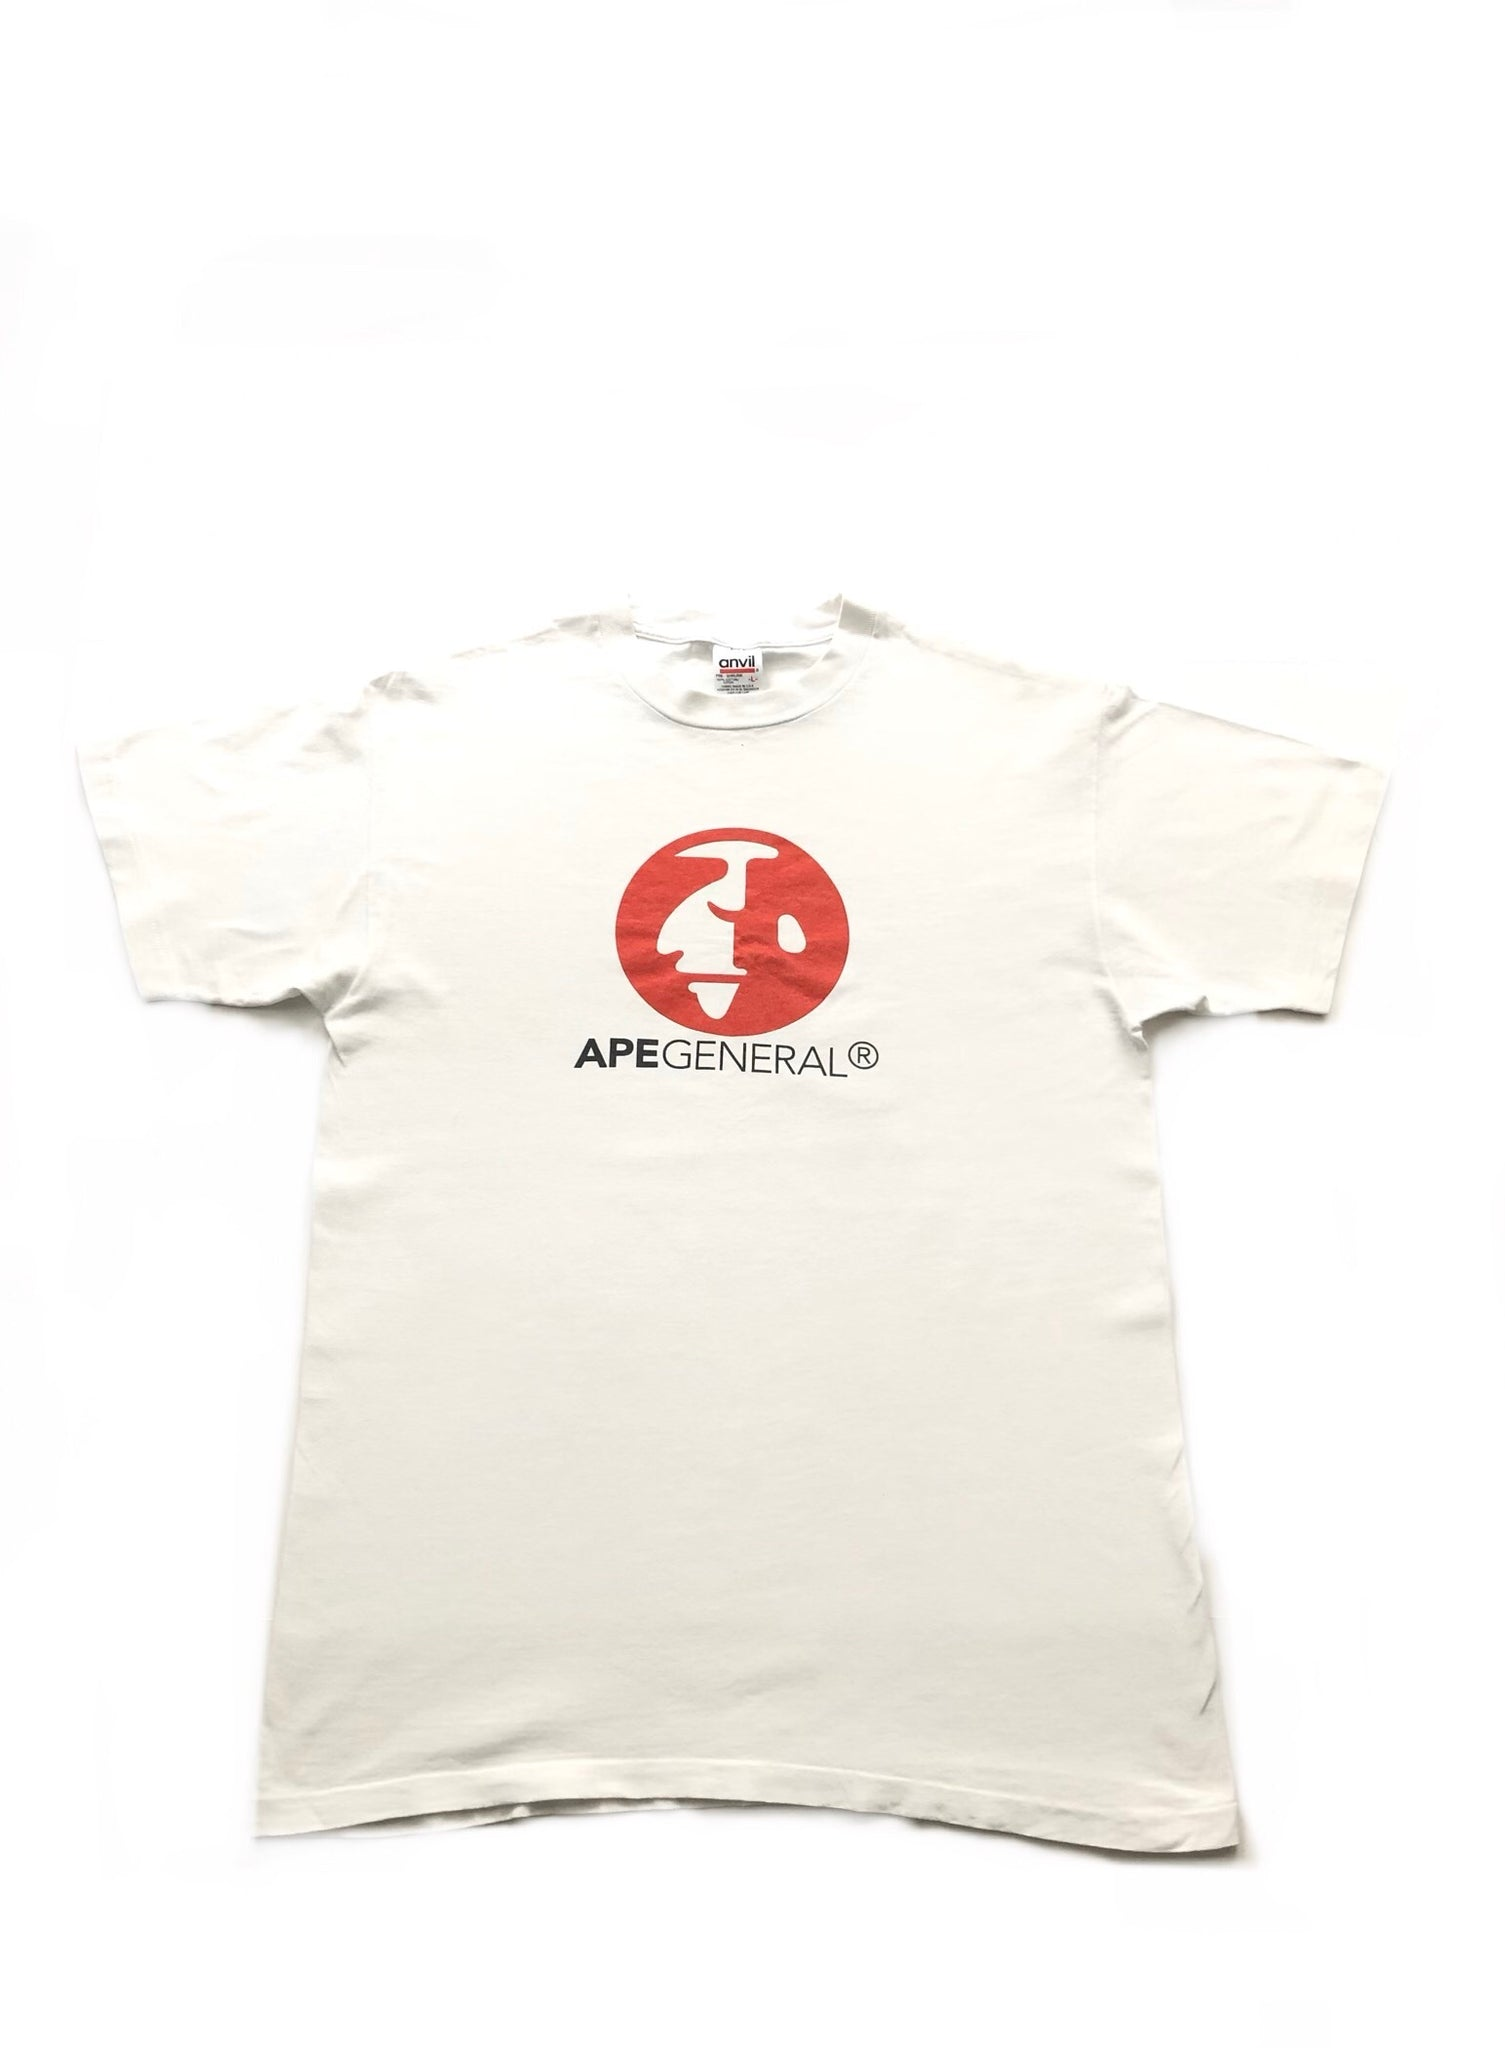 Vintage Circa 97' Bathing Ape 'Ape General' T-Shirt